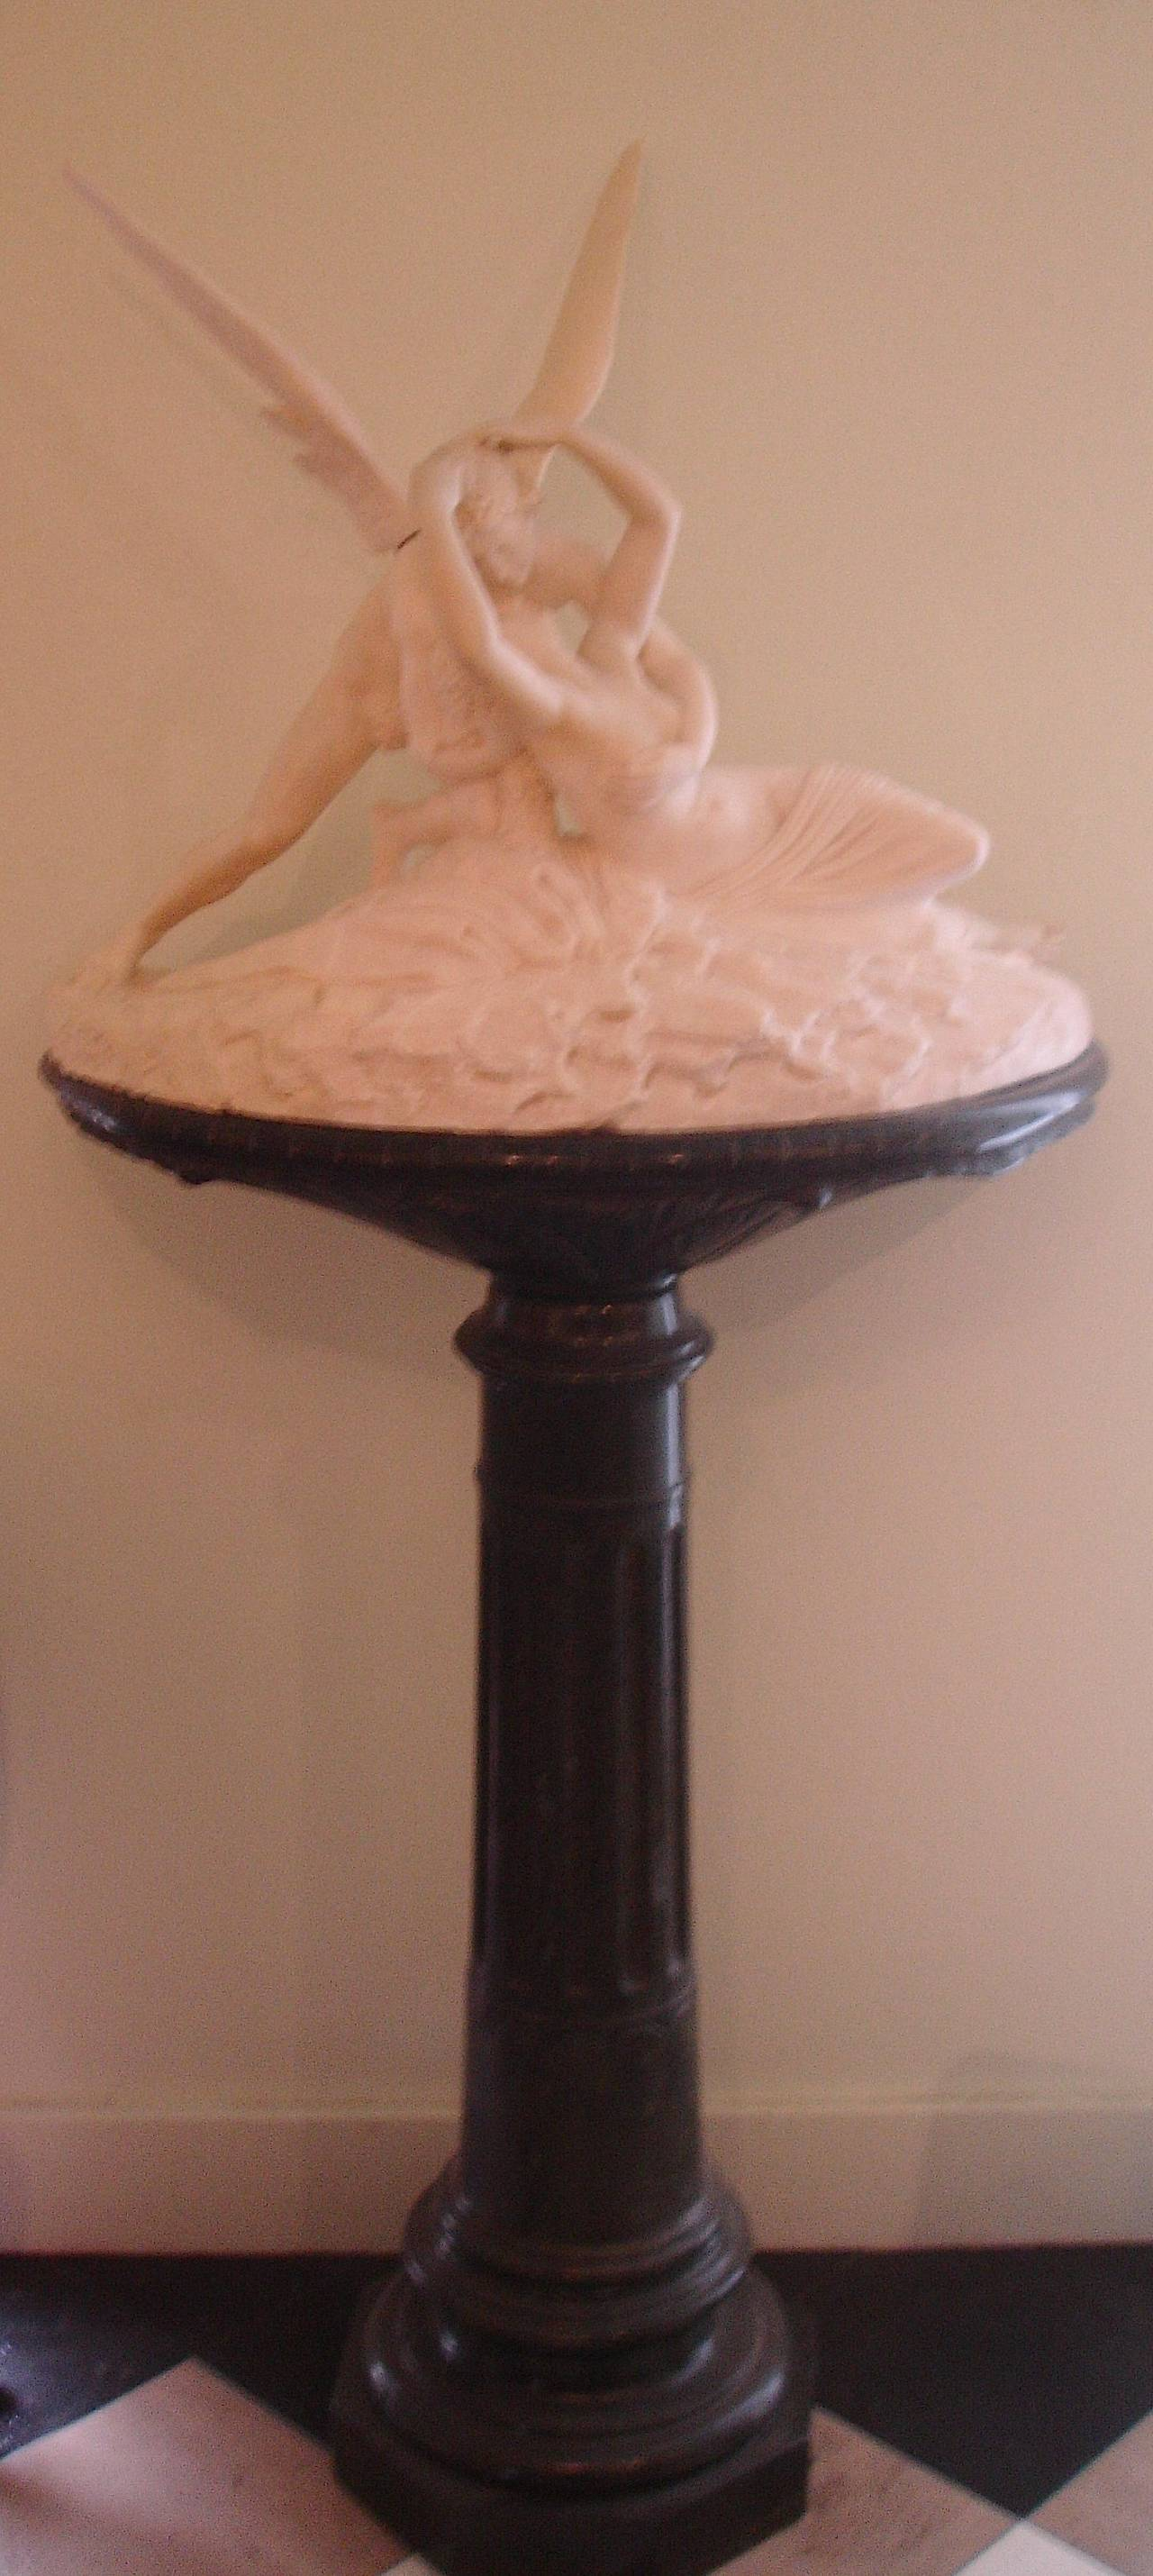 Neoclassical Palatial Marble Sculpture By Barzanti.  'Cupid's Kiss' on Marble Pedestal For Sale